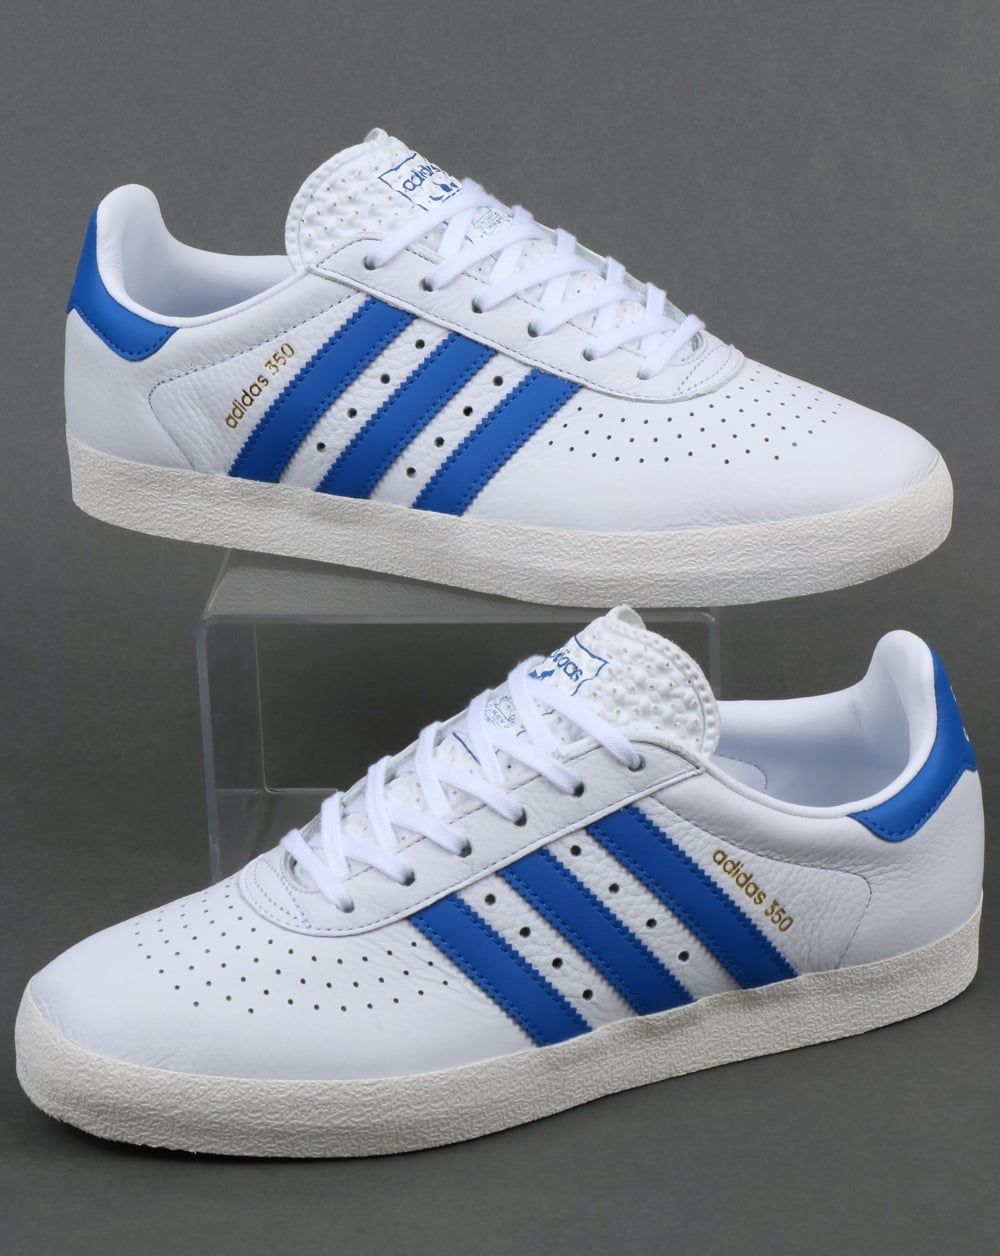 a99184568 adidas Trainers Adidas 350 Trainers White Blue